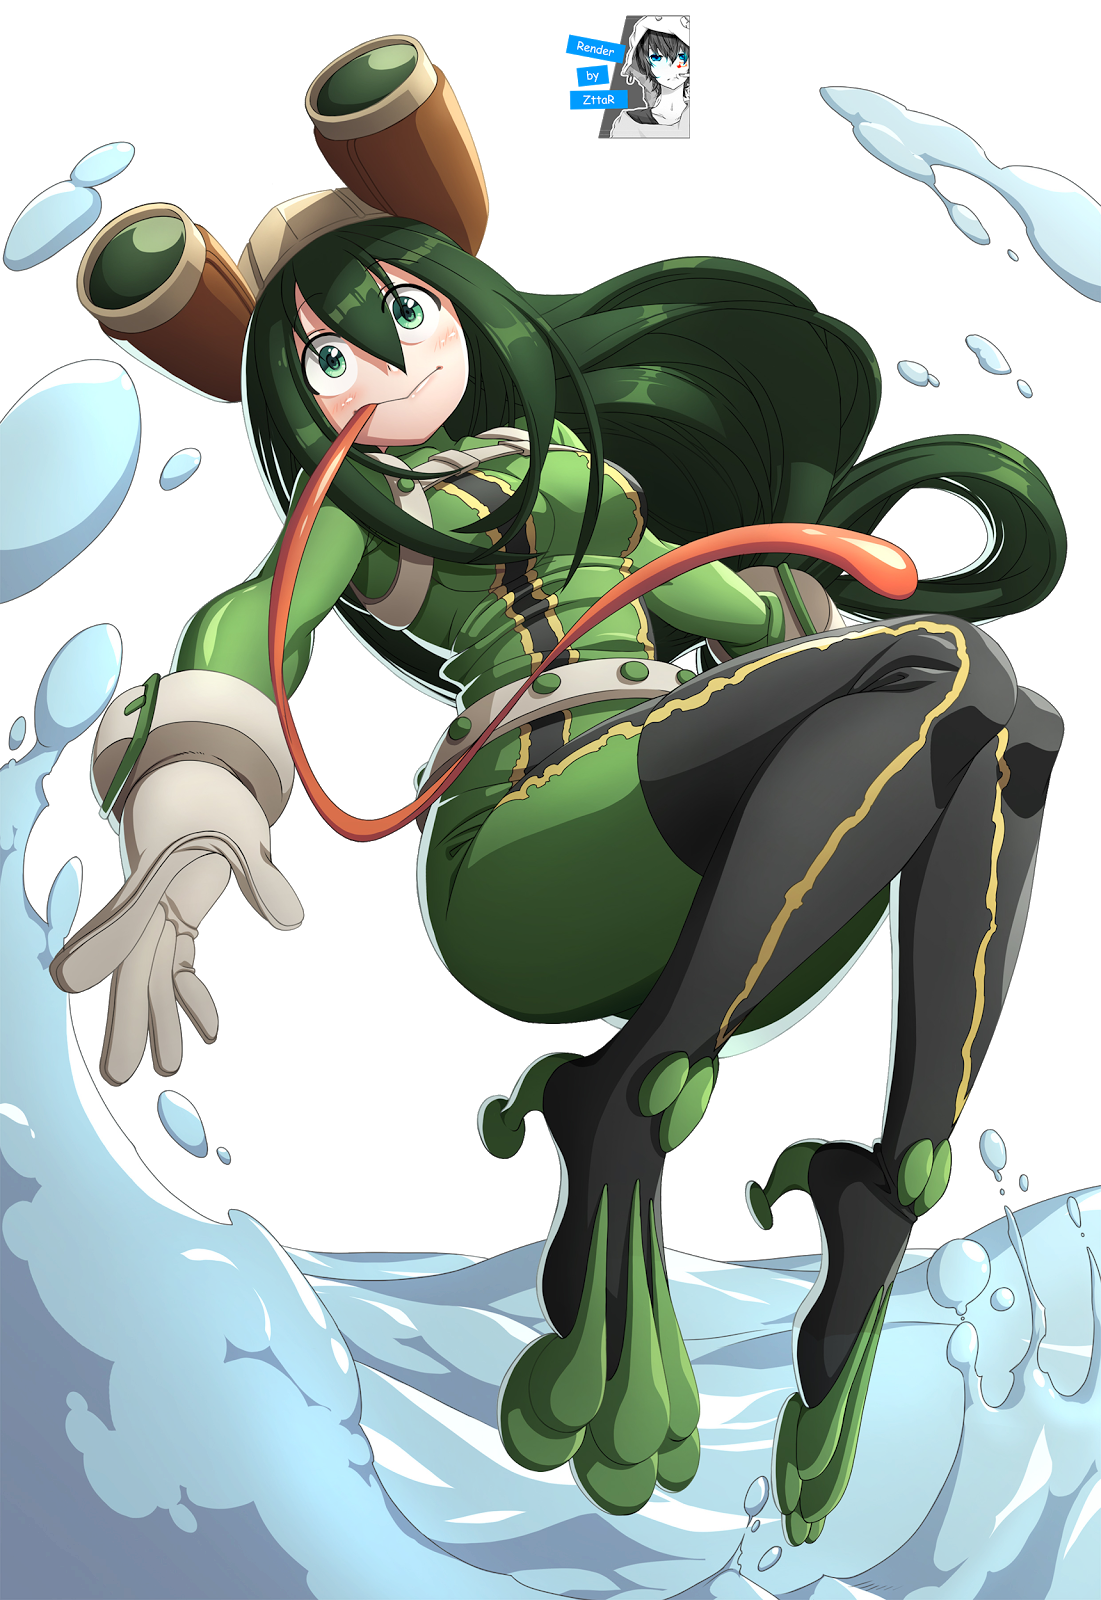 Render Asui Tsuyu COOL ~3 versiones~